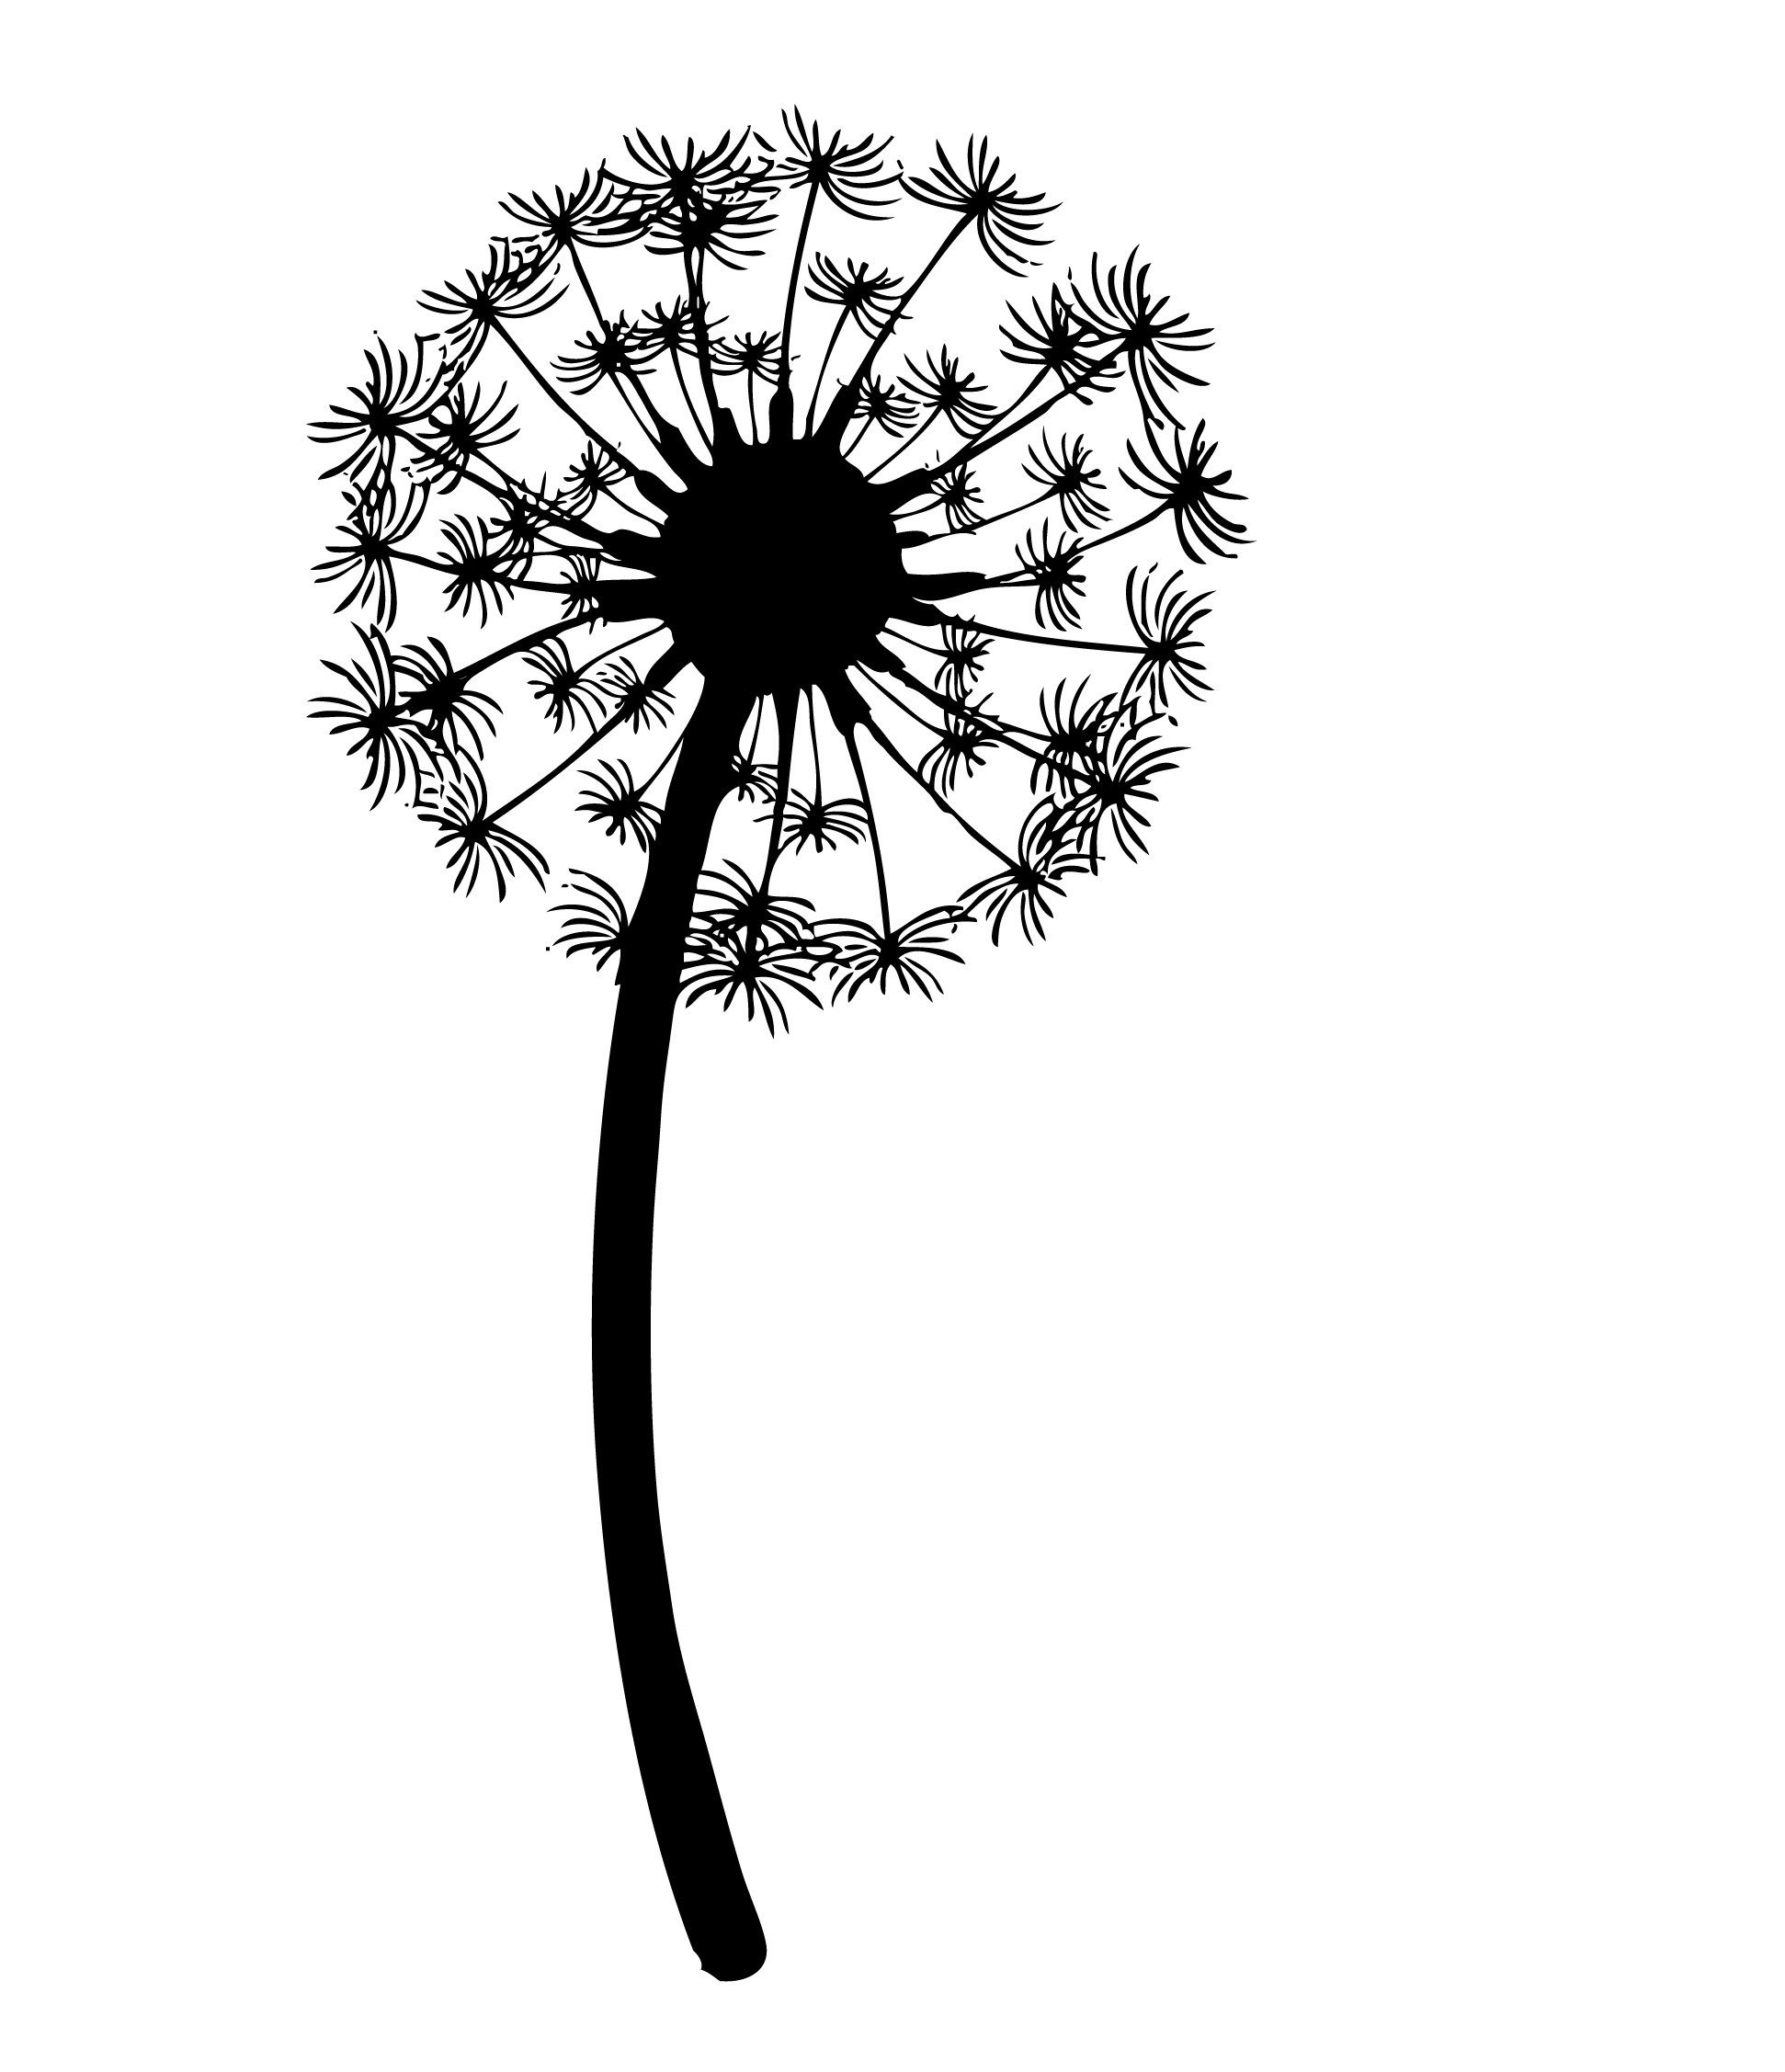 Image Result For Dandelion Black And White Drawing Dandelion Tattoo Design Dandelion Tattoo Dandelion